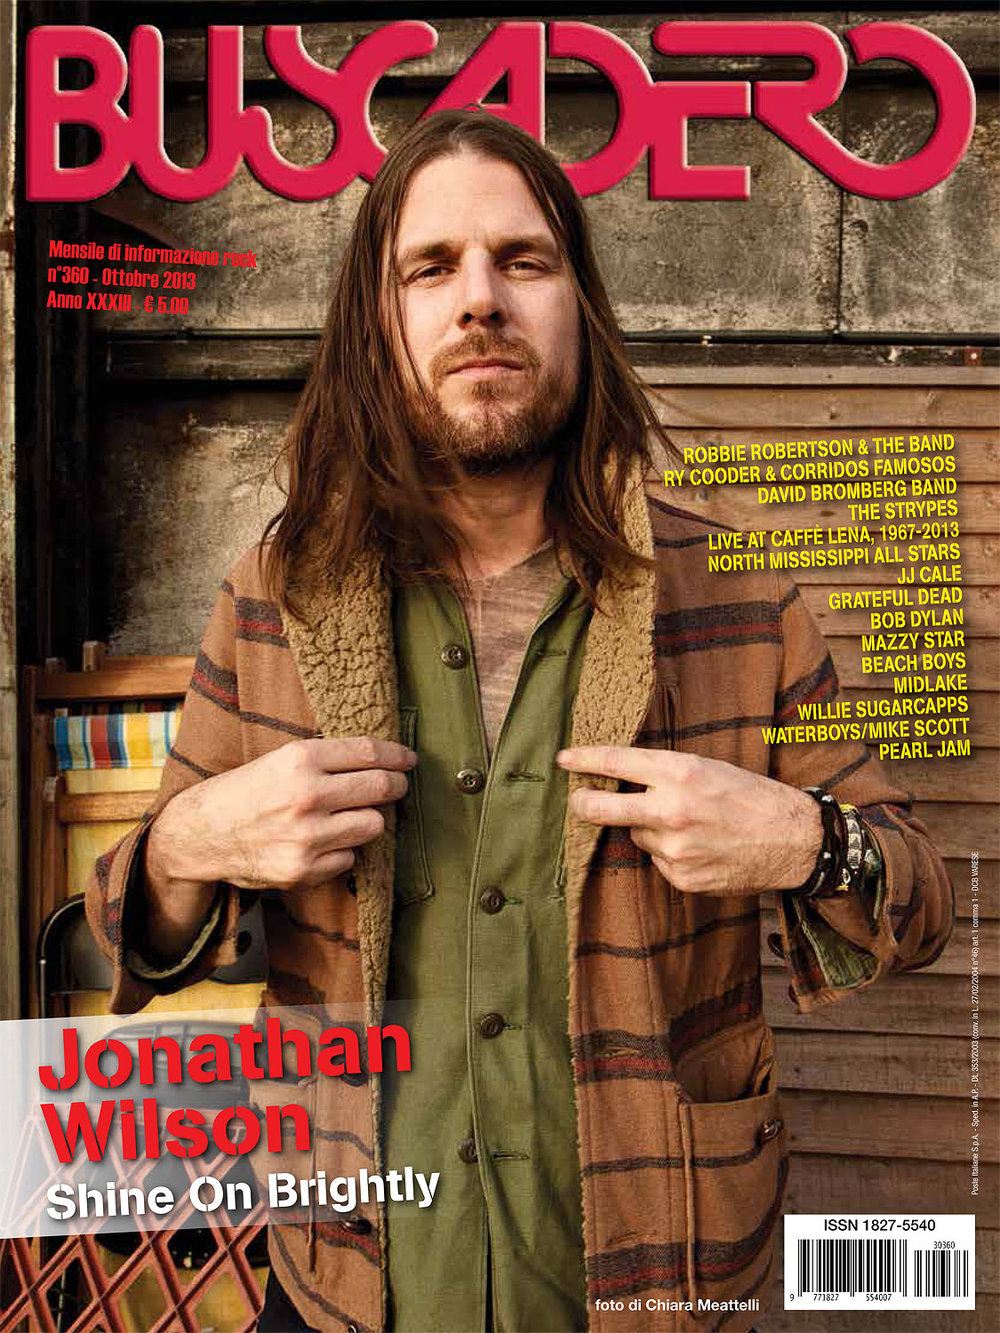 Buscadero: Jonathan Wilson cover photo & cover story